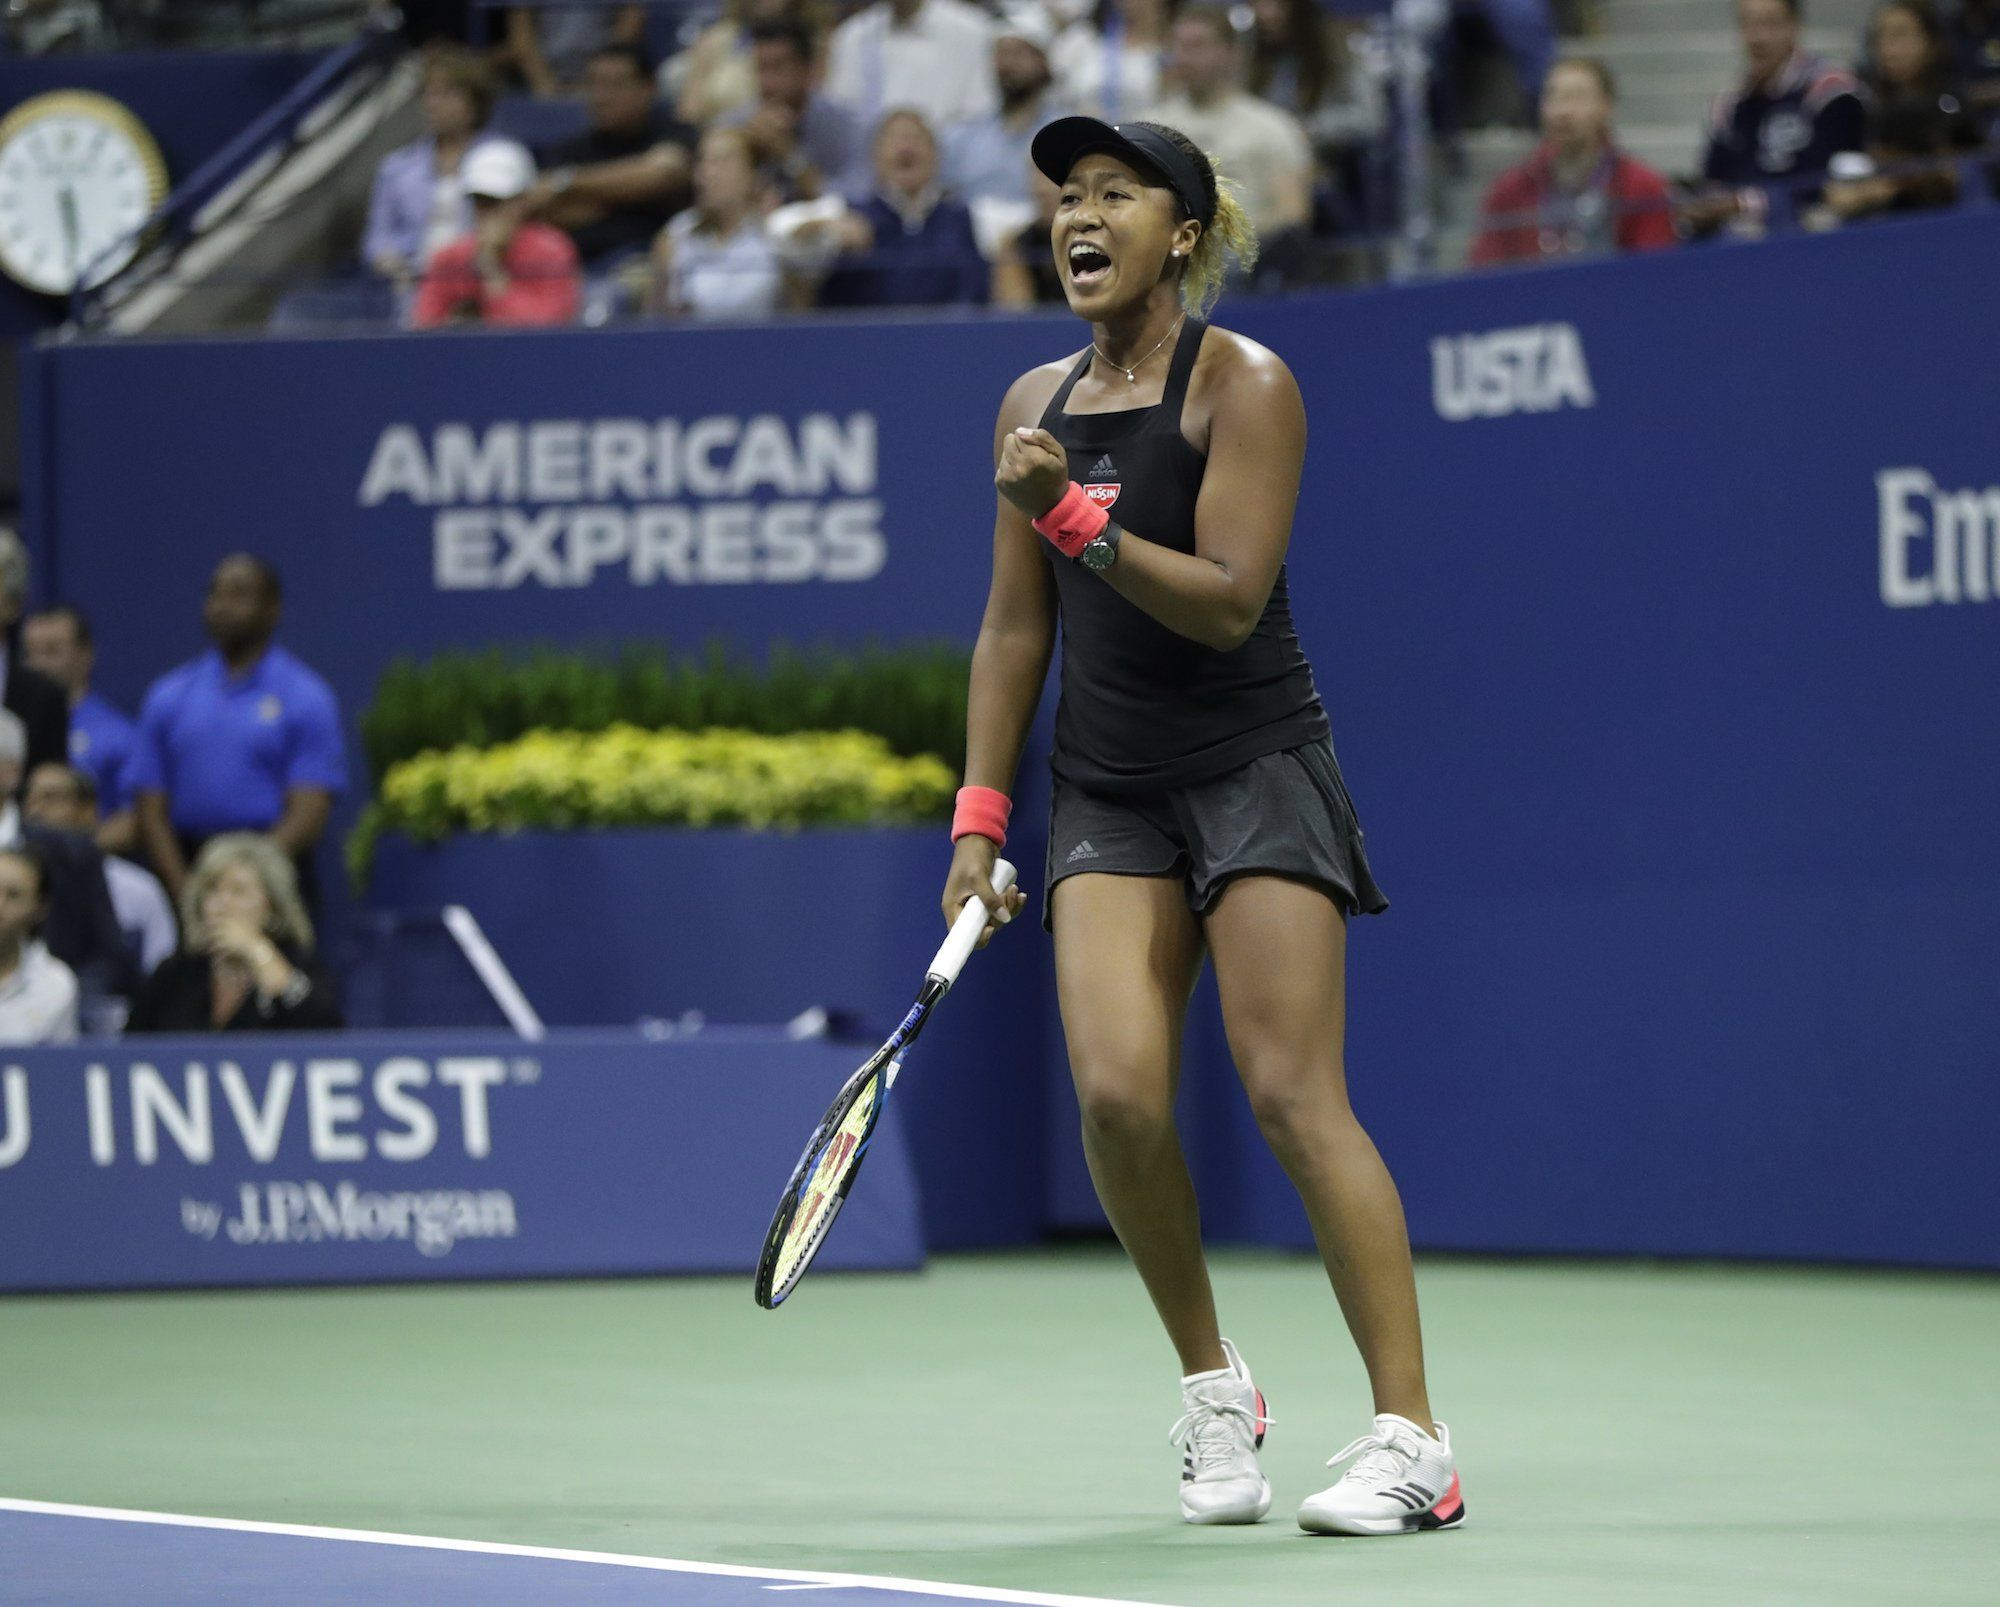 Naomi Osaka is reportedly set to sign Adidas' biggest ever